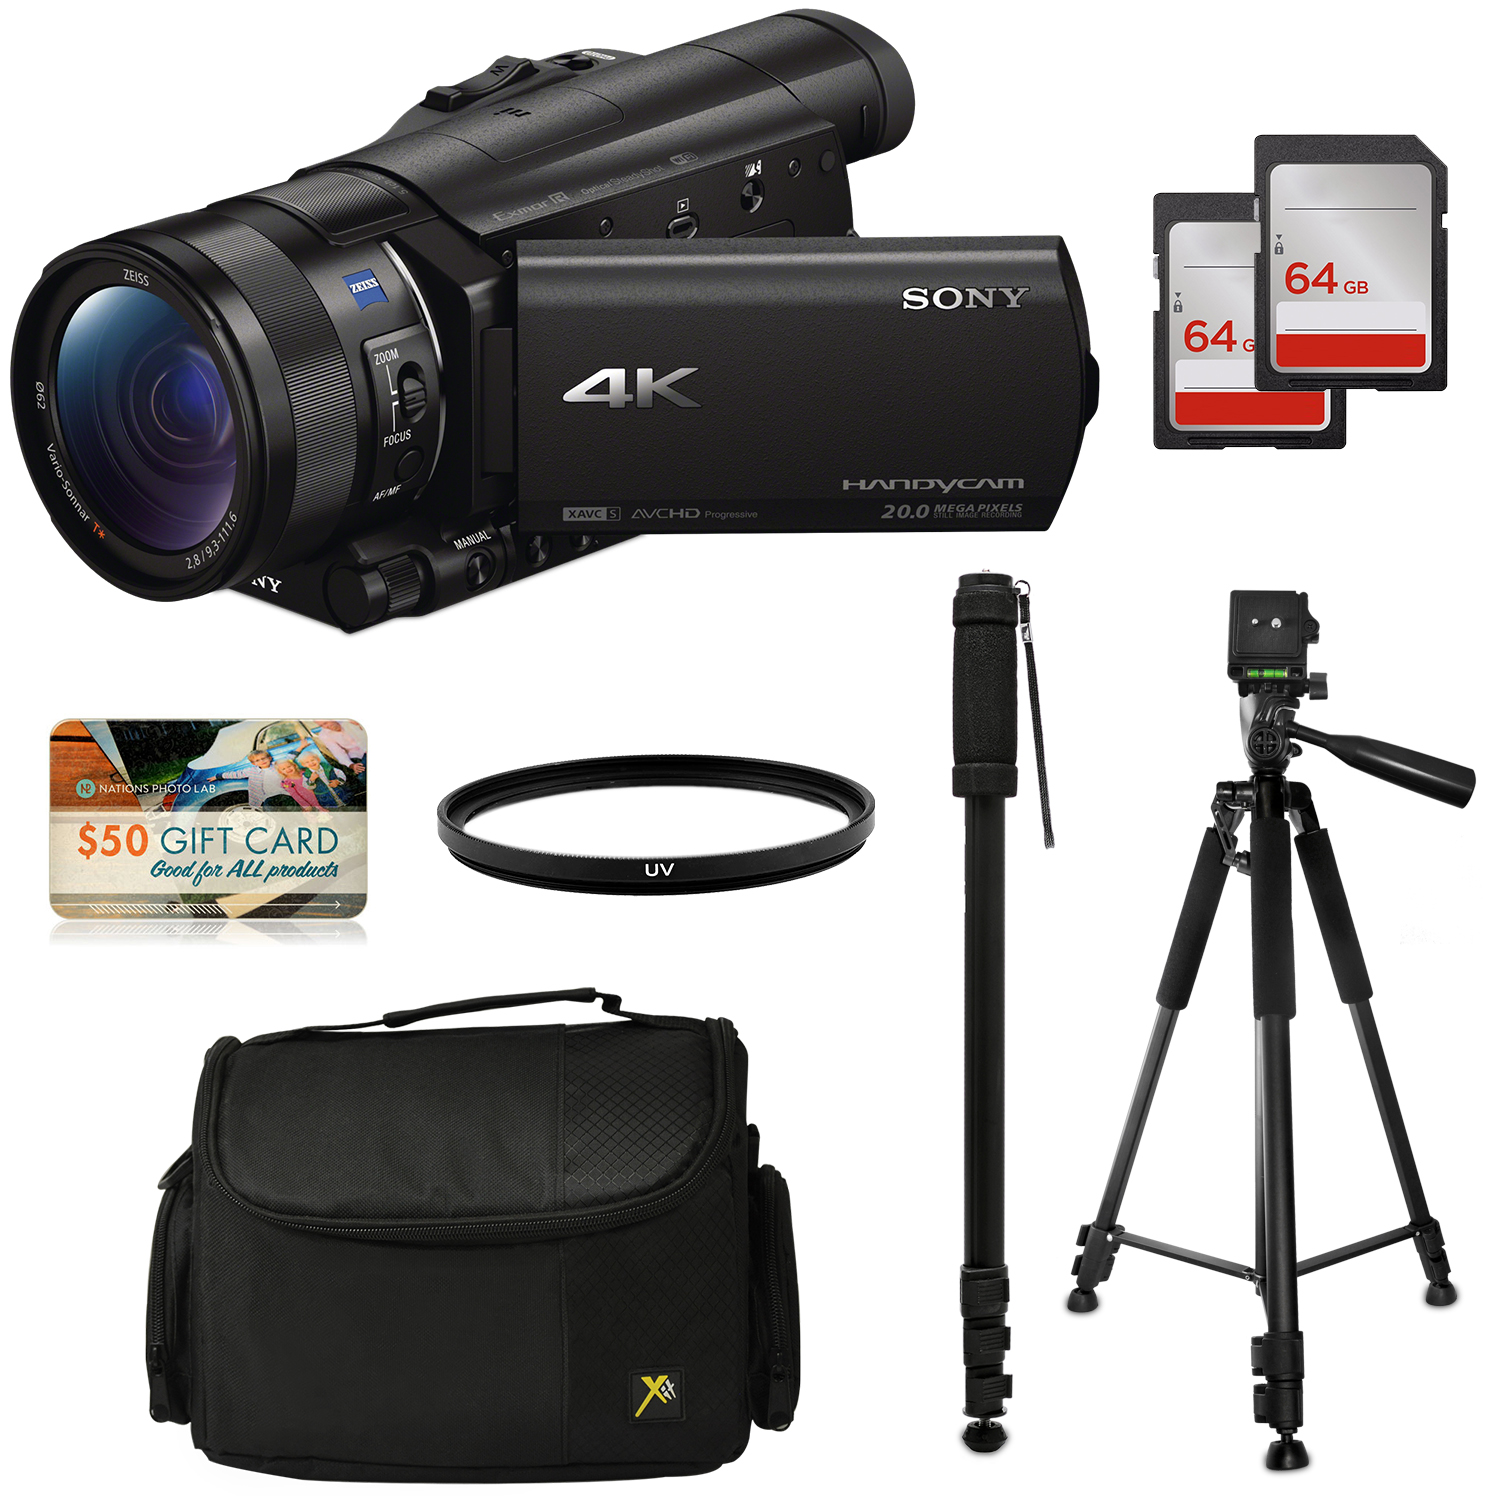 Sony FDR-AX100 4K Ultra HD Camcorder Video Camera Kit, 128GB Memory + Tripod + Monopod + Bag + UV Filter by 47th Street Photo